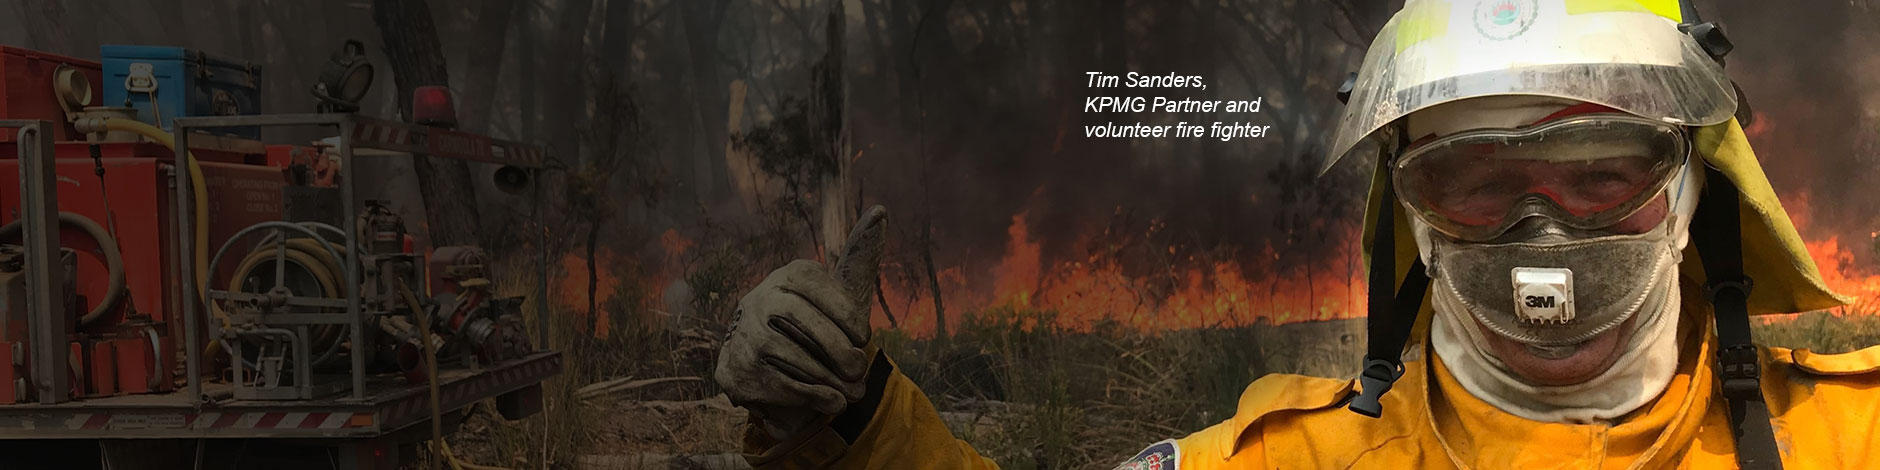 KPMG Partner, Tim Sanders, who is a volunteer fire fighter (RFS).